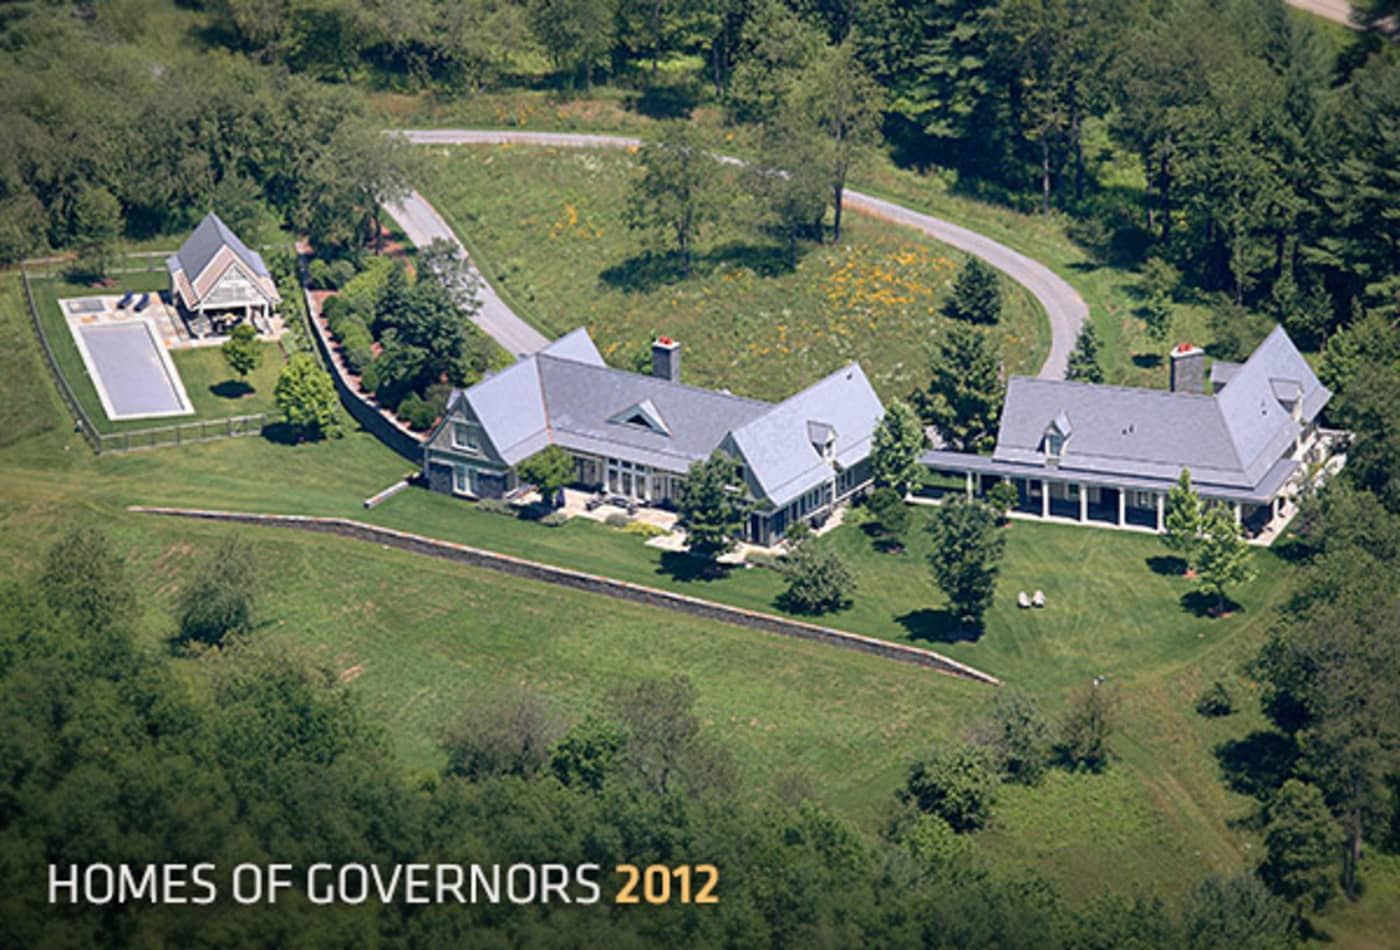 Cover-Deval-Patrick-Homes-of-Governors-2012.jpg